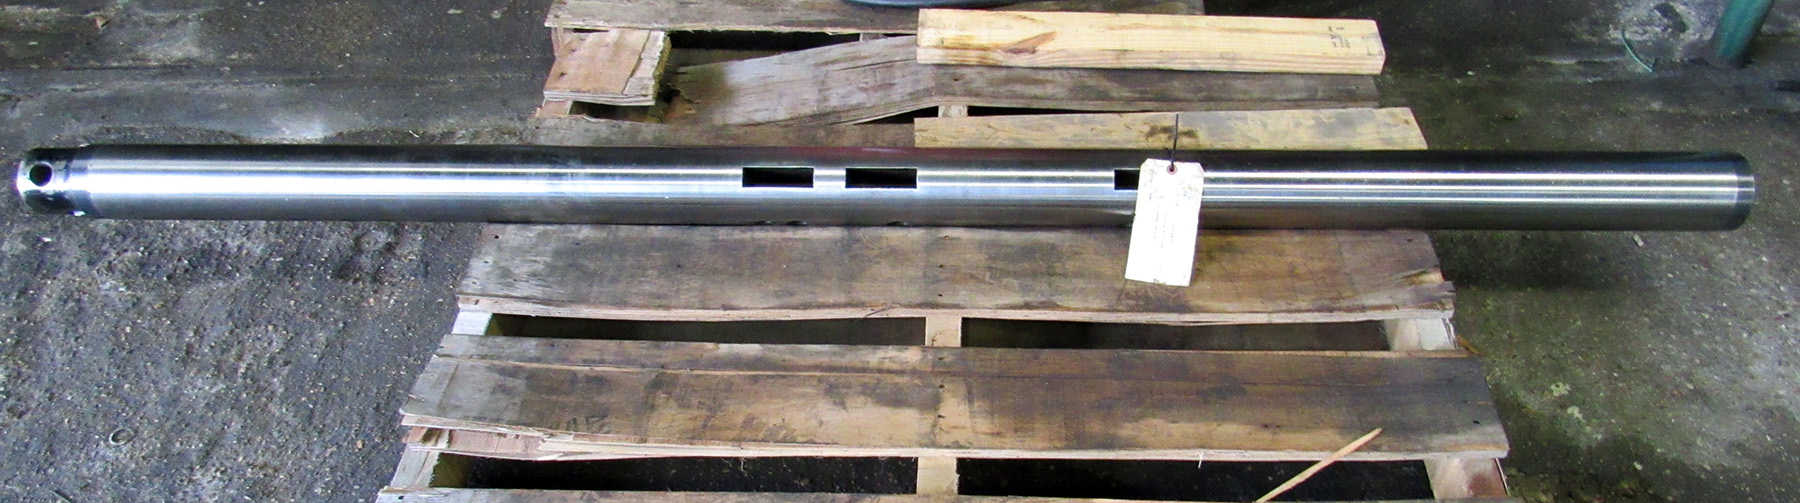 "USED, 4"" X 86-1/2"" LINE BORING BAR"